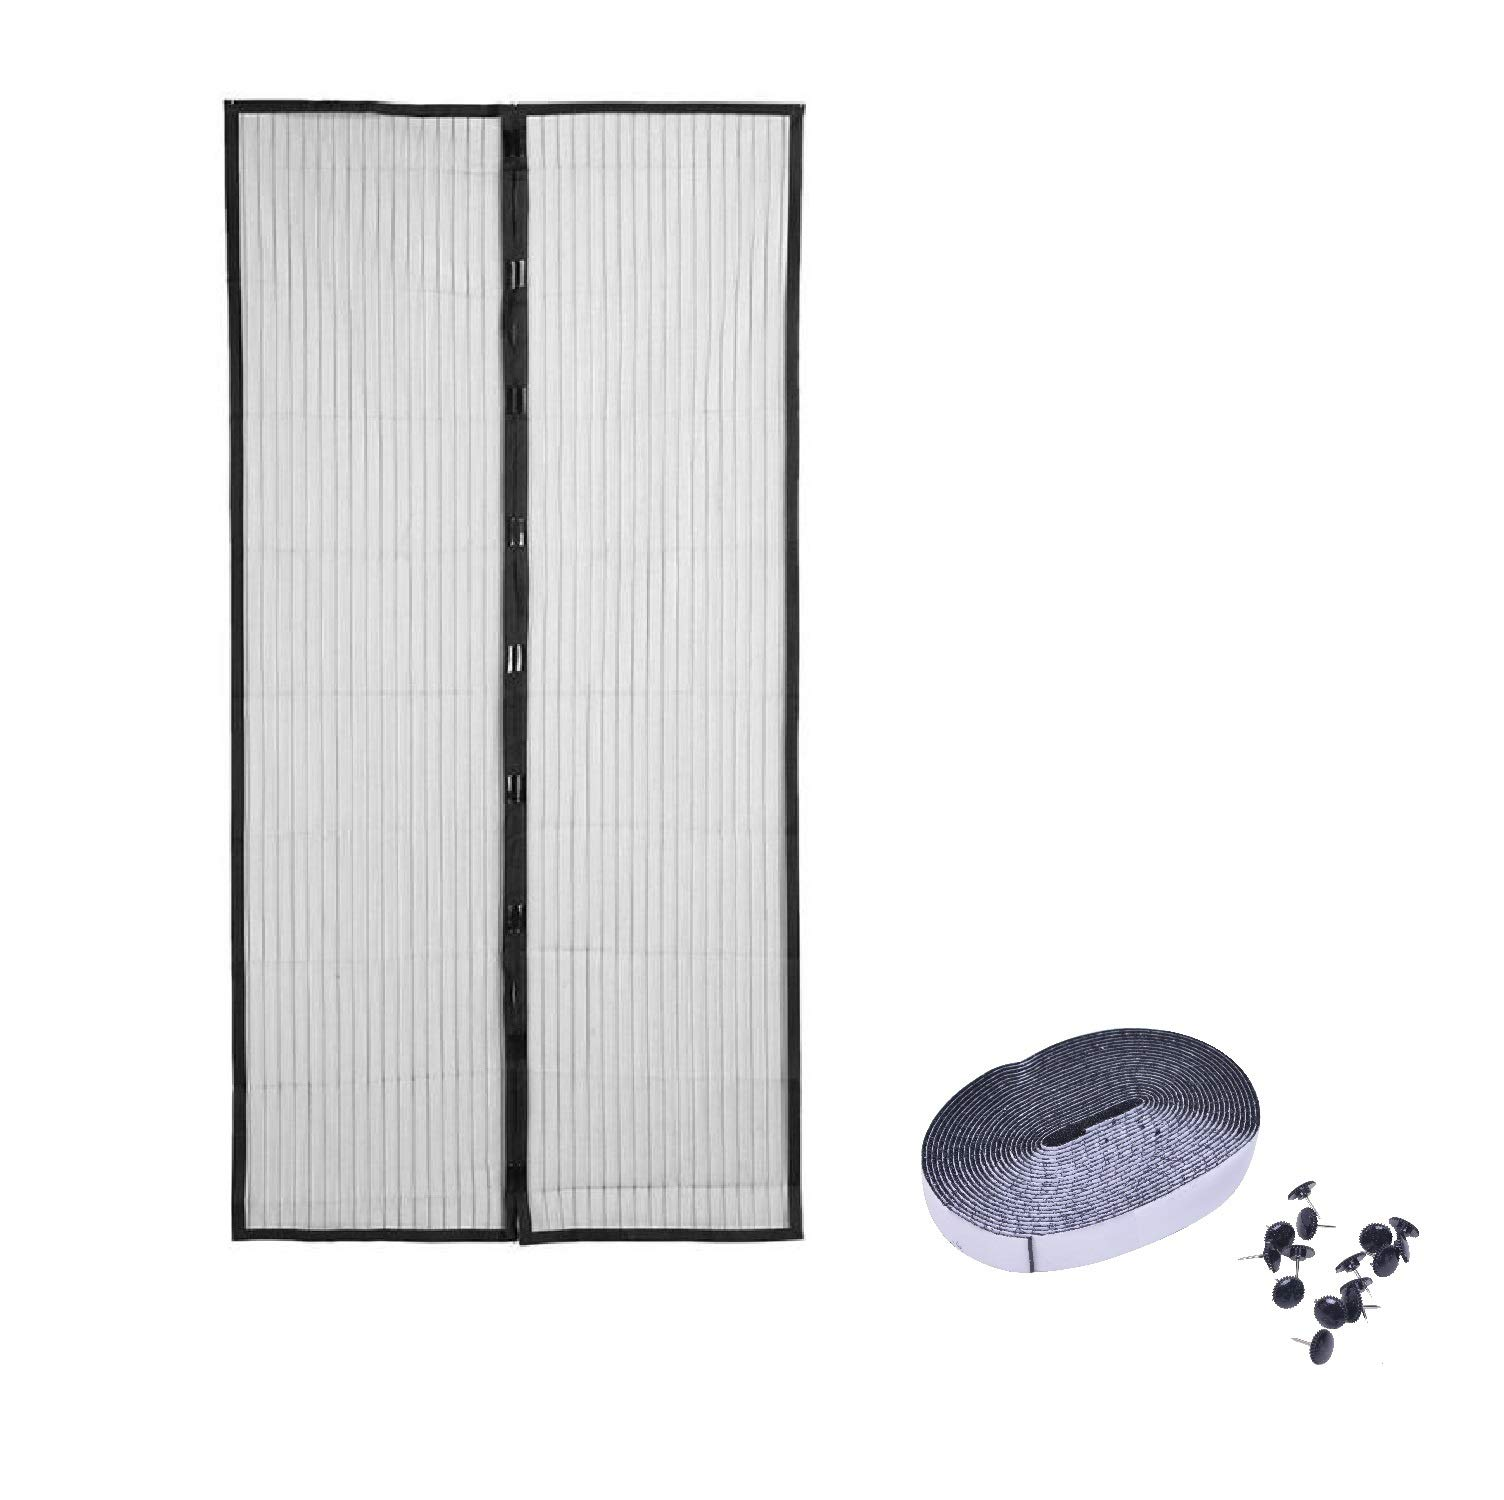 Karp Magnetic Screen Door Full Frame Mosquito Net Curtain With Hook And Loop Fastener Tape (100 cm W X 210 cm H, Weight - 655 Grams) - Black Color product image